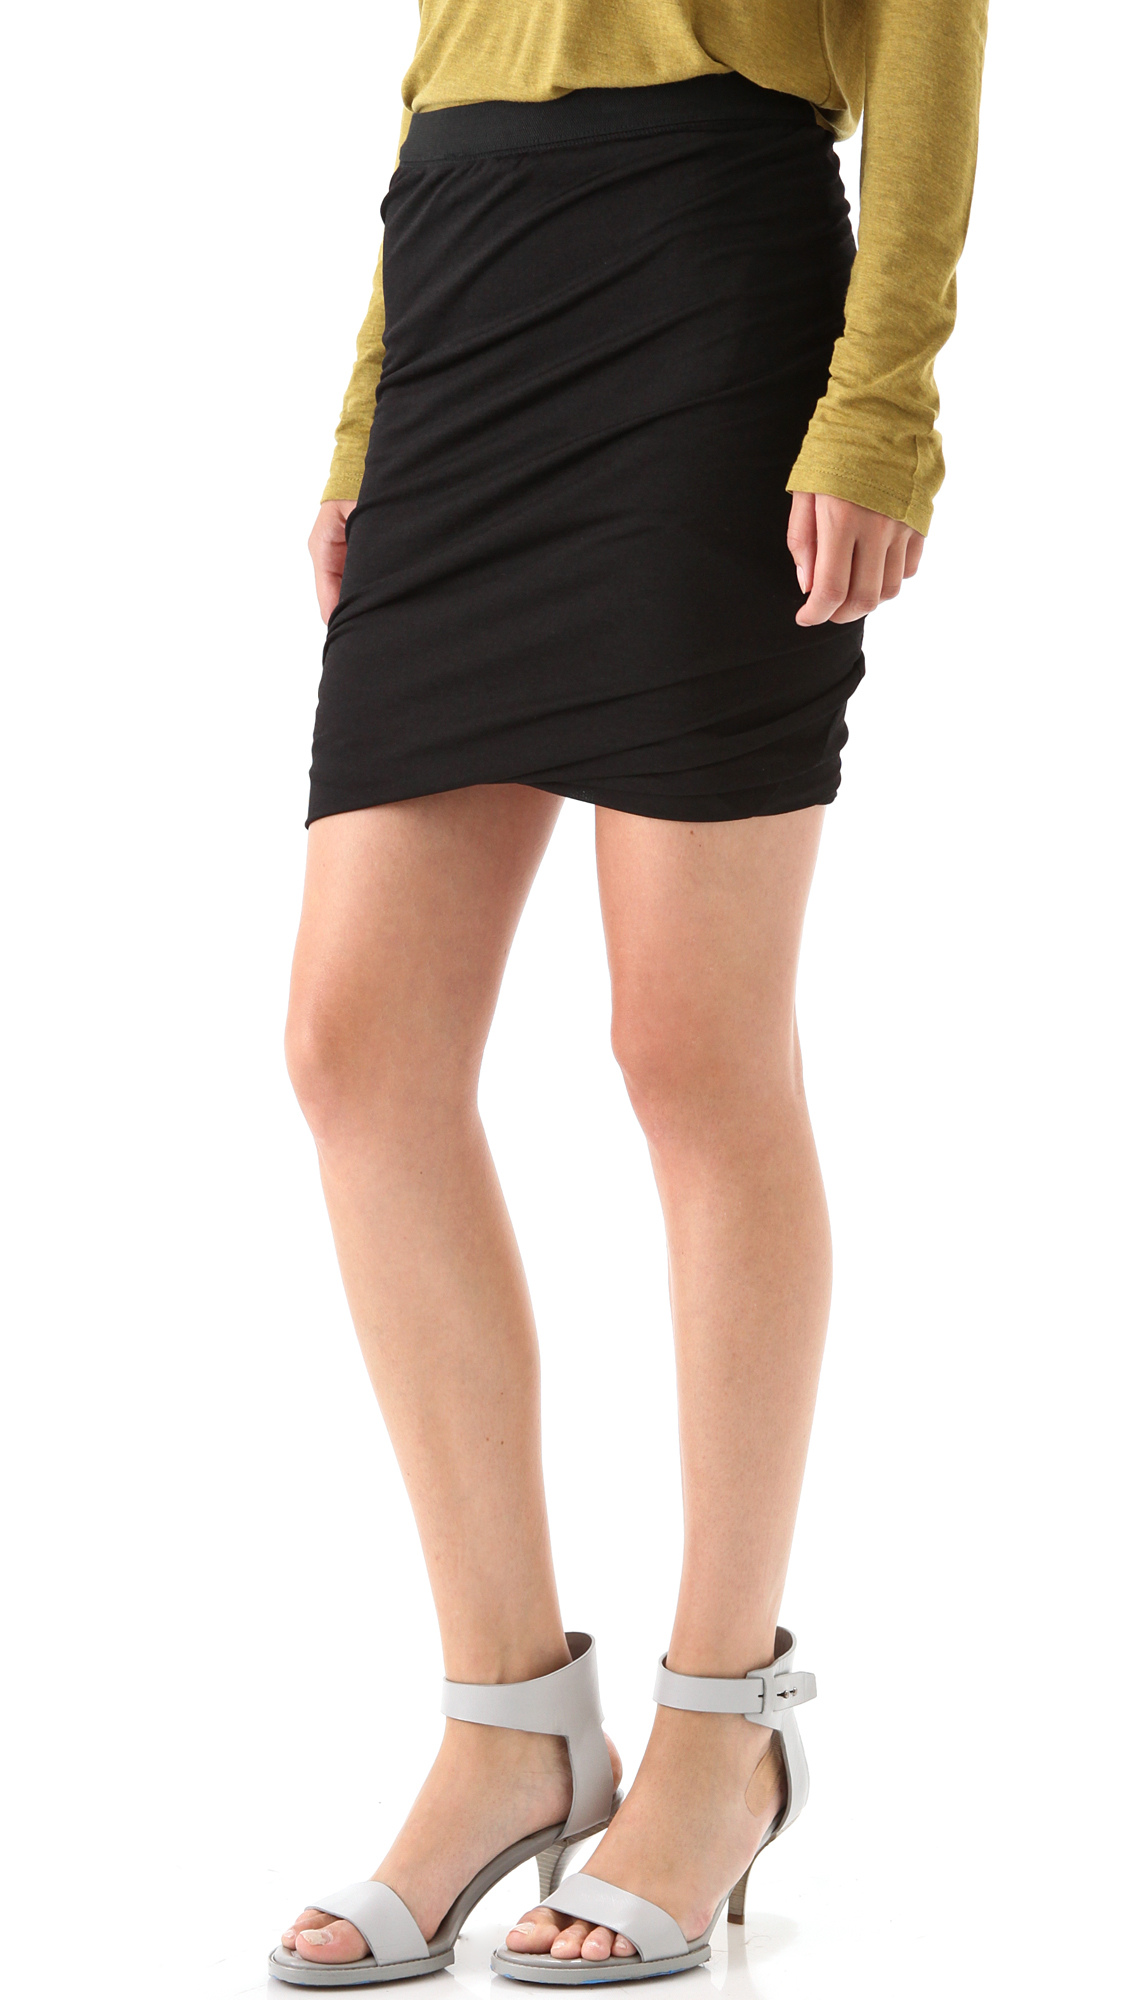 vogue and patterns top prevnext drapes misses draped skirt